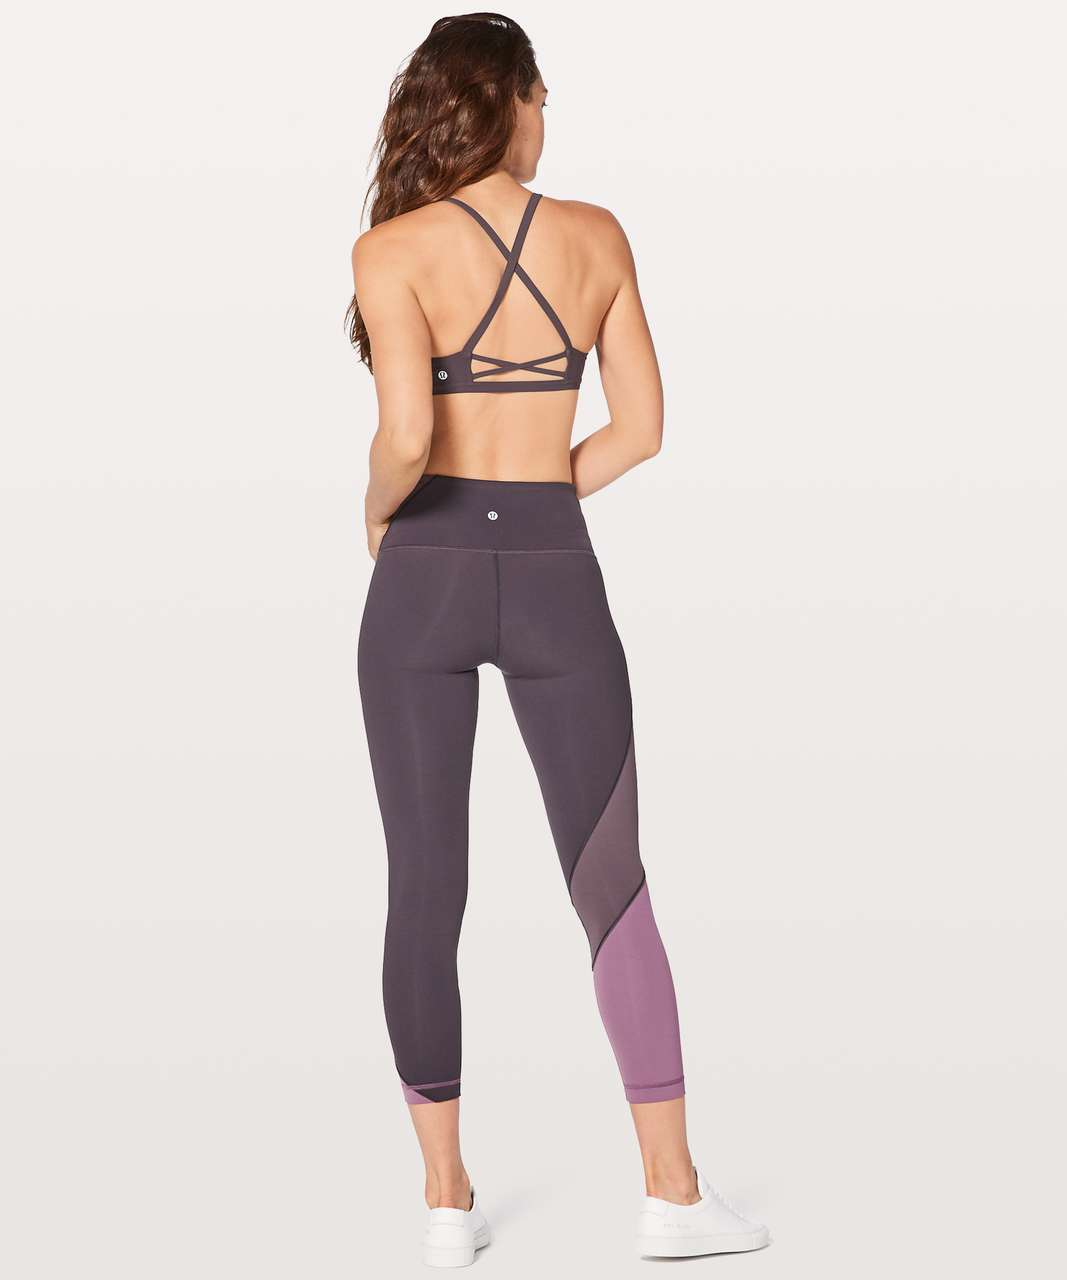 Lululemon Laced With Intent Bra - Black Currant